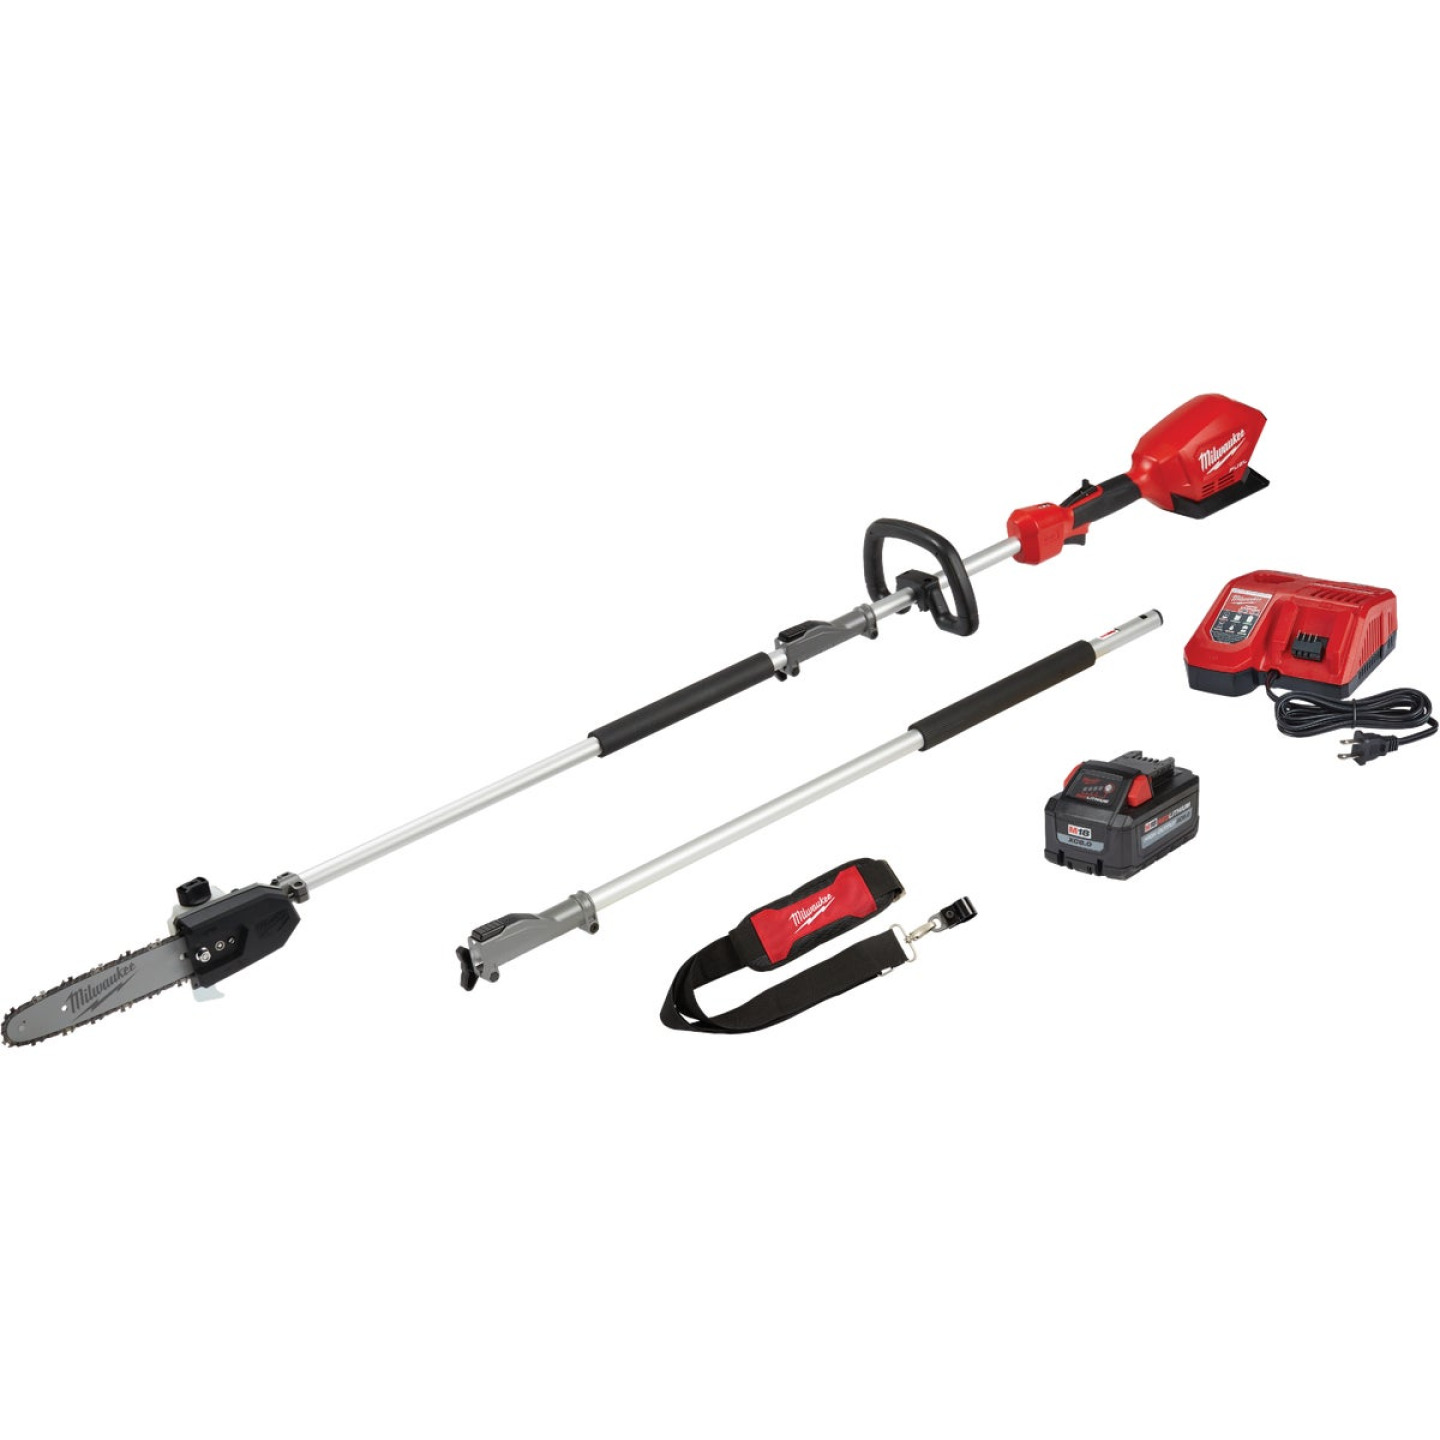 Milwaukee M18 Fuel 10 In. Pole Saw Kit with Quik-Lok Attachment Capability Image 1